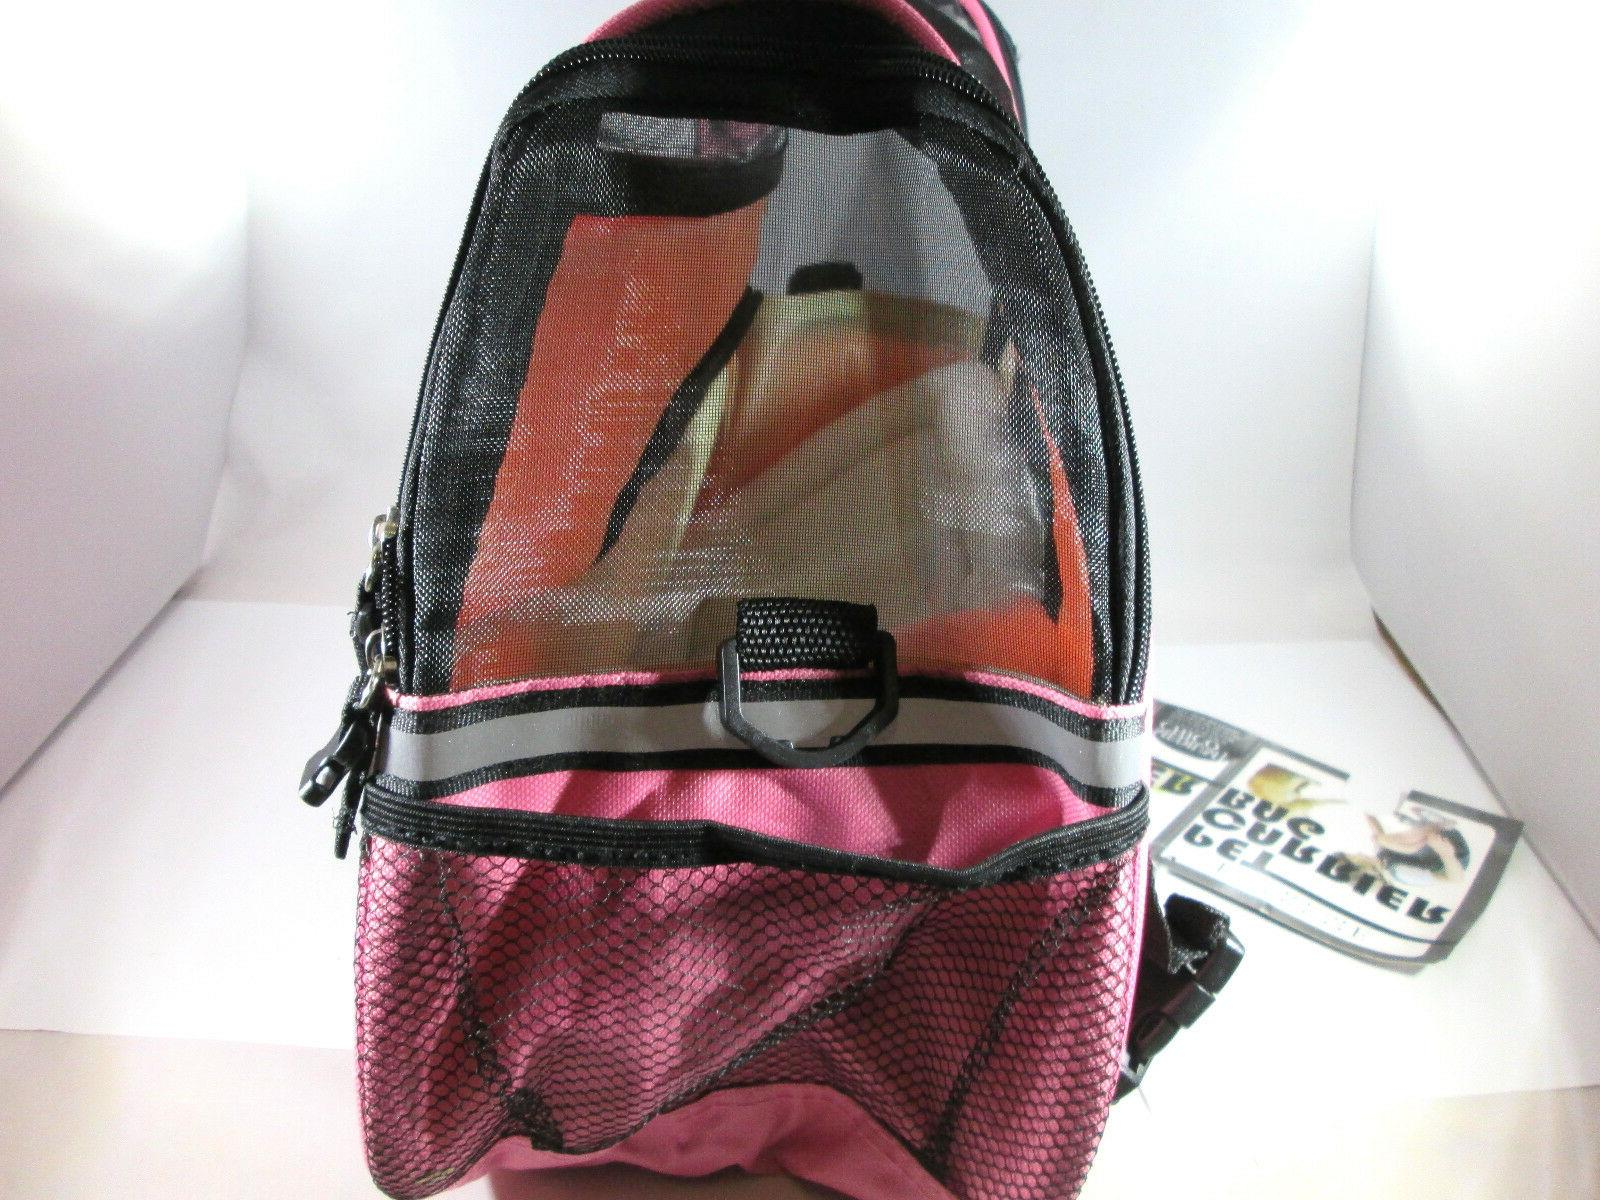 Oxgord Soft Travel Tote - Pink Up 10 lbs *READ*